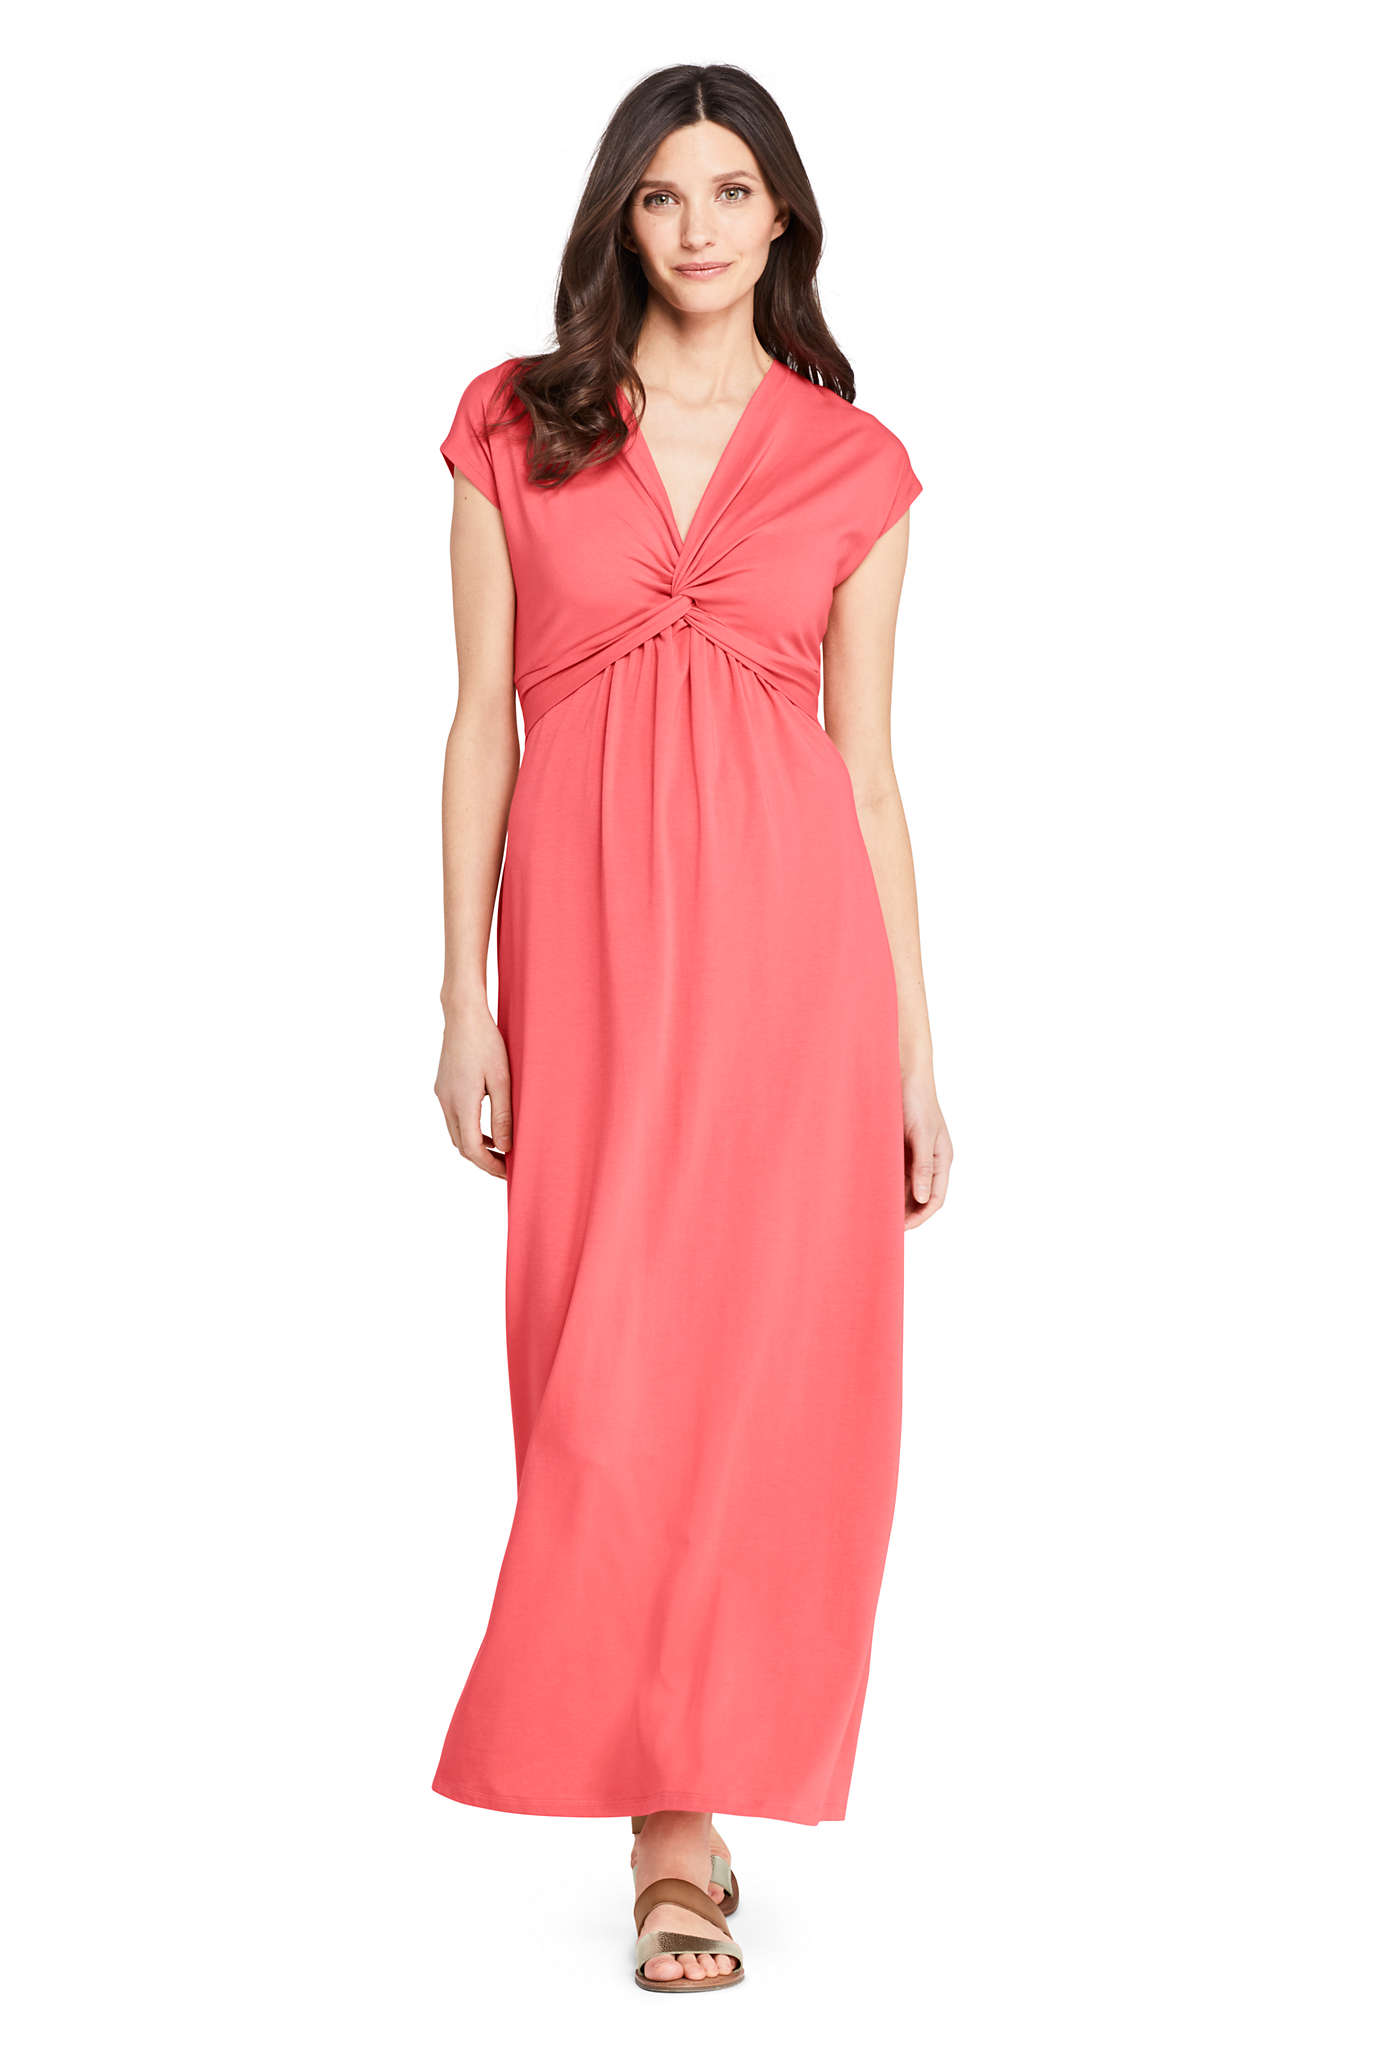 Women's Cap Sleeve Surplice Wrap Maxi Dress - Print